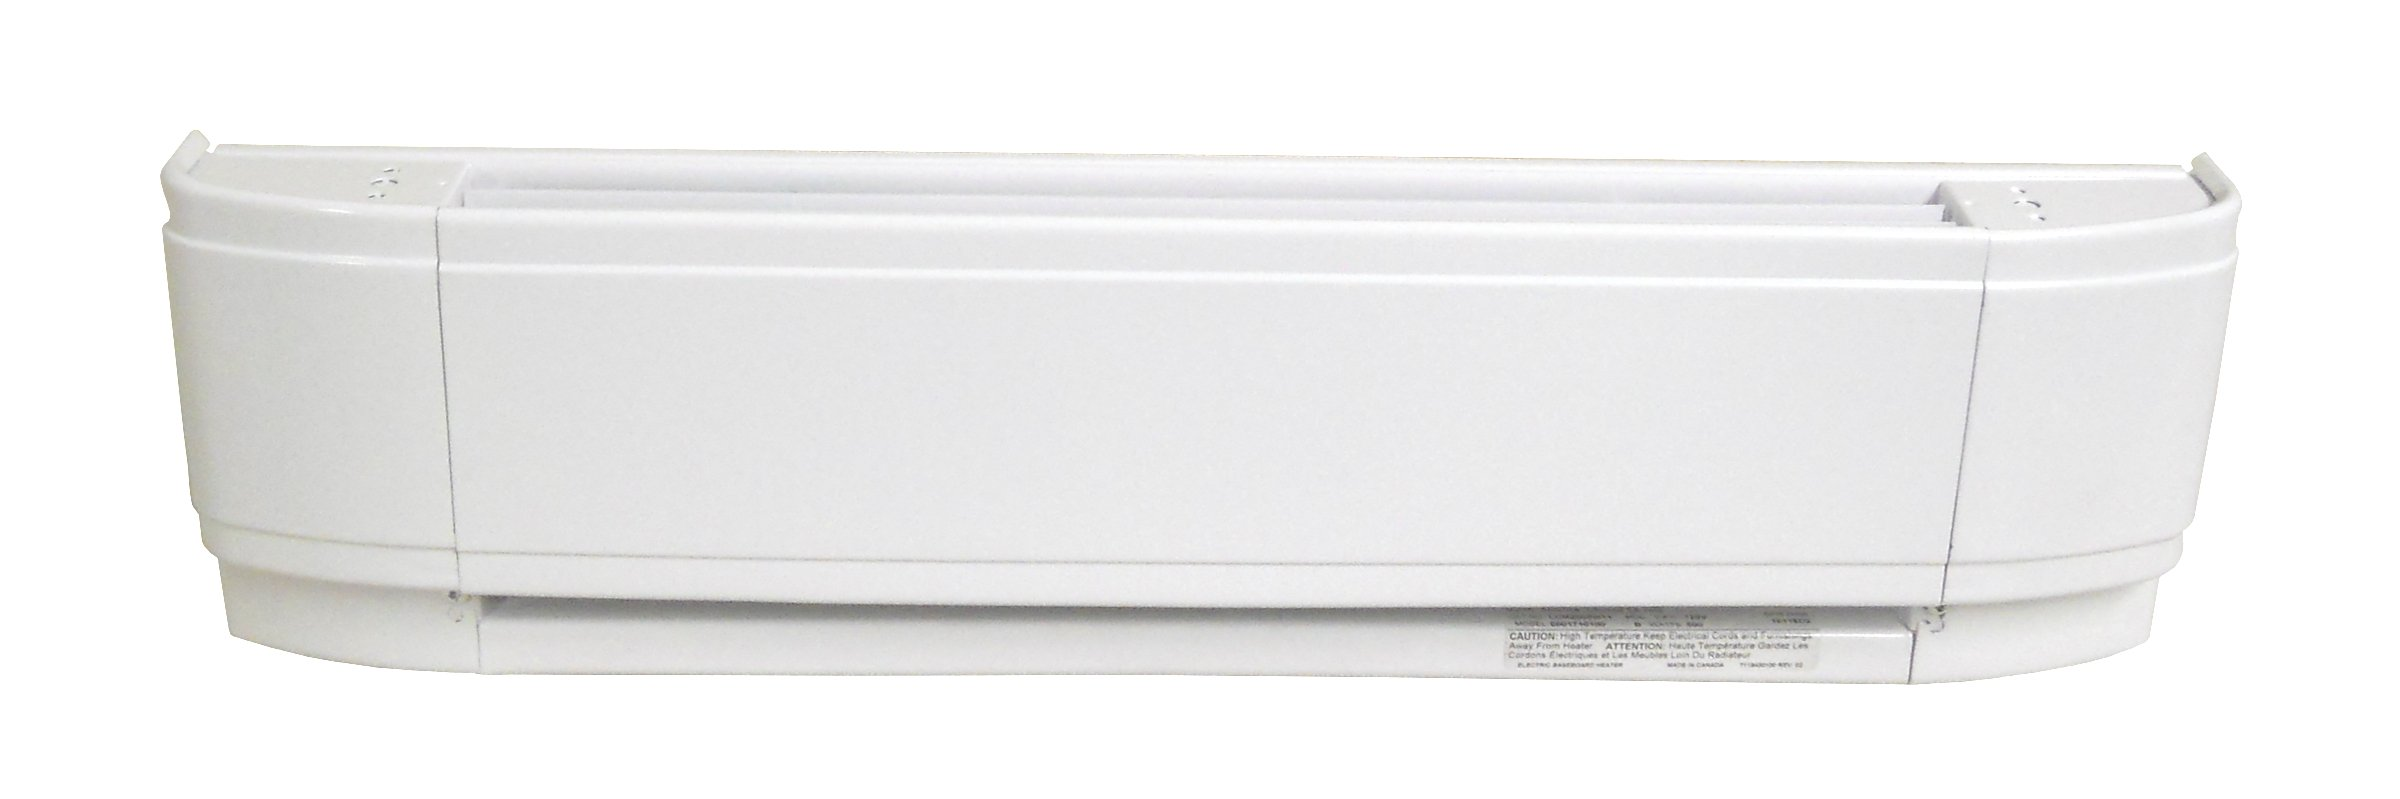 40'' Electric Baseboard Heater, White, 1000W, 120V